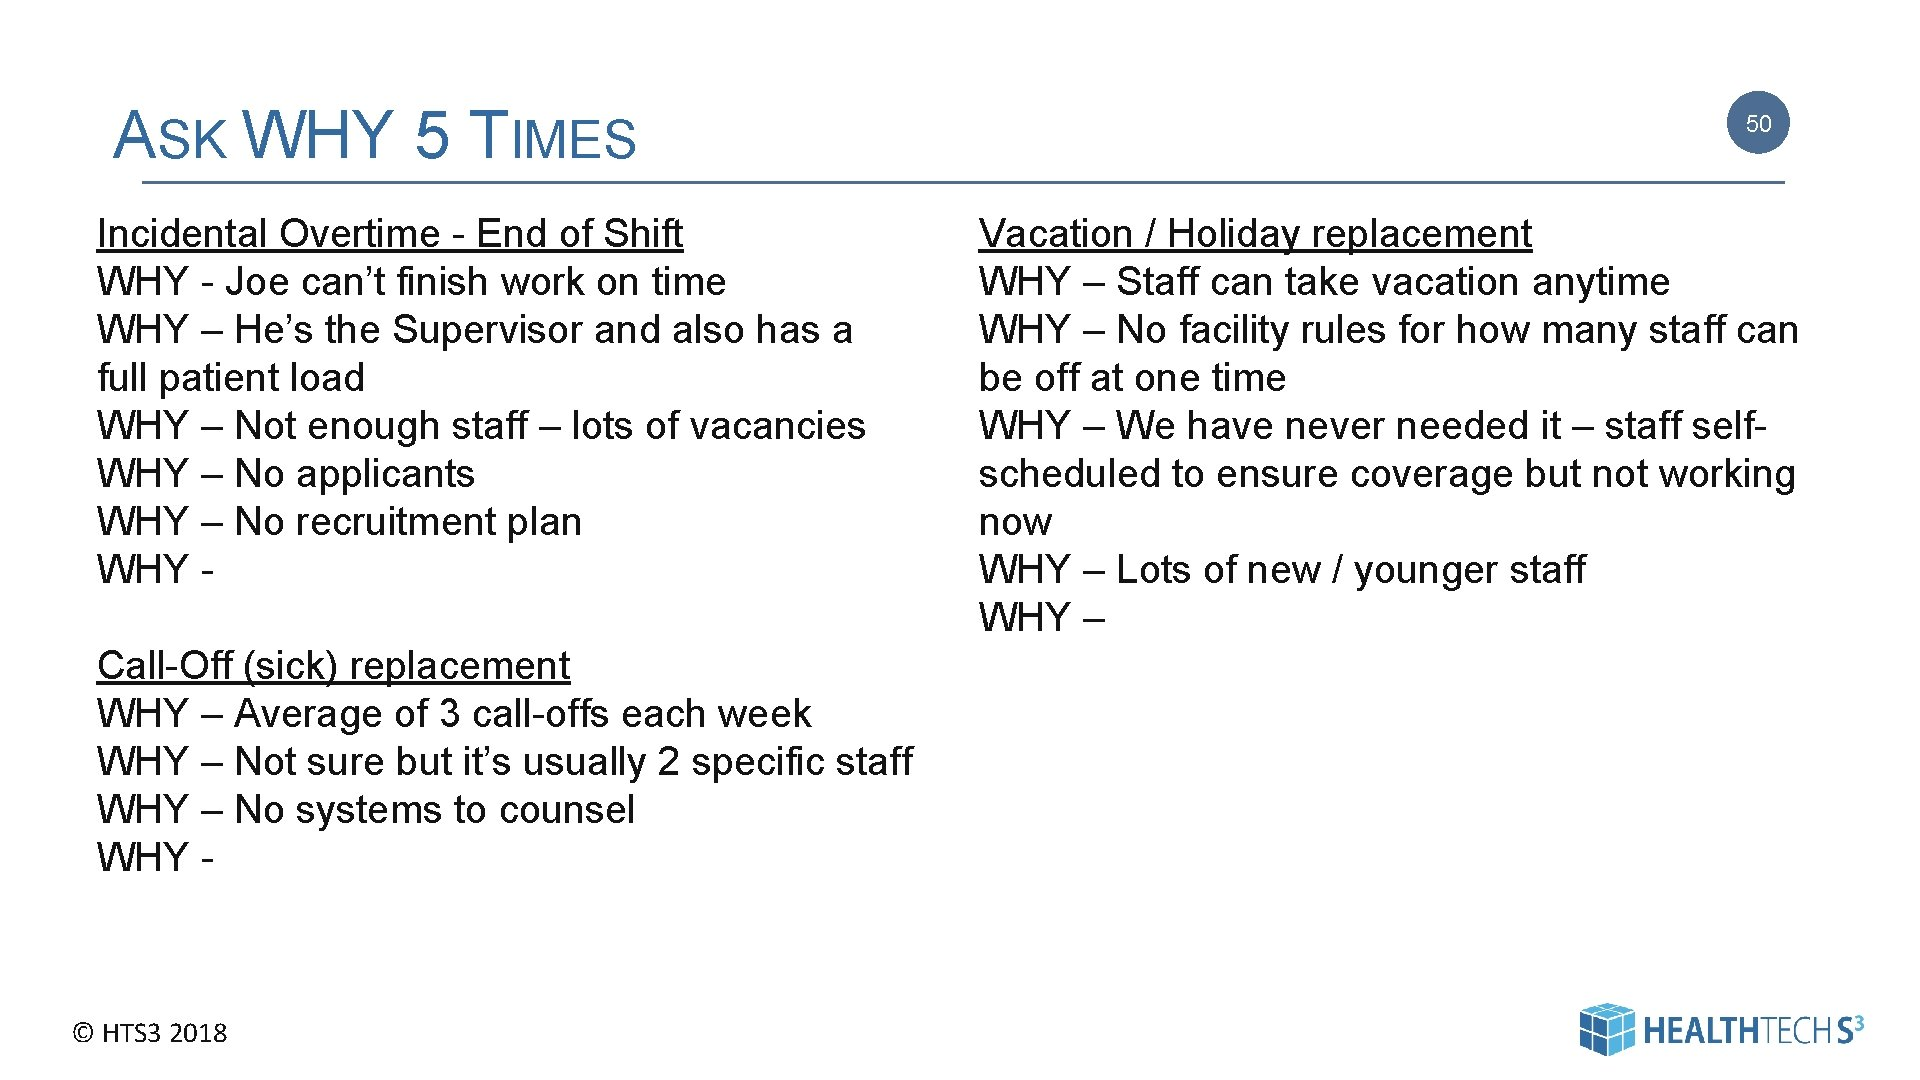 ASK WHY 5 TIMES Incidental Overtime - End of Shift WHY - Joe can't